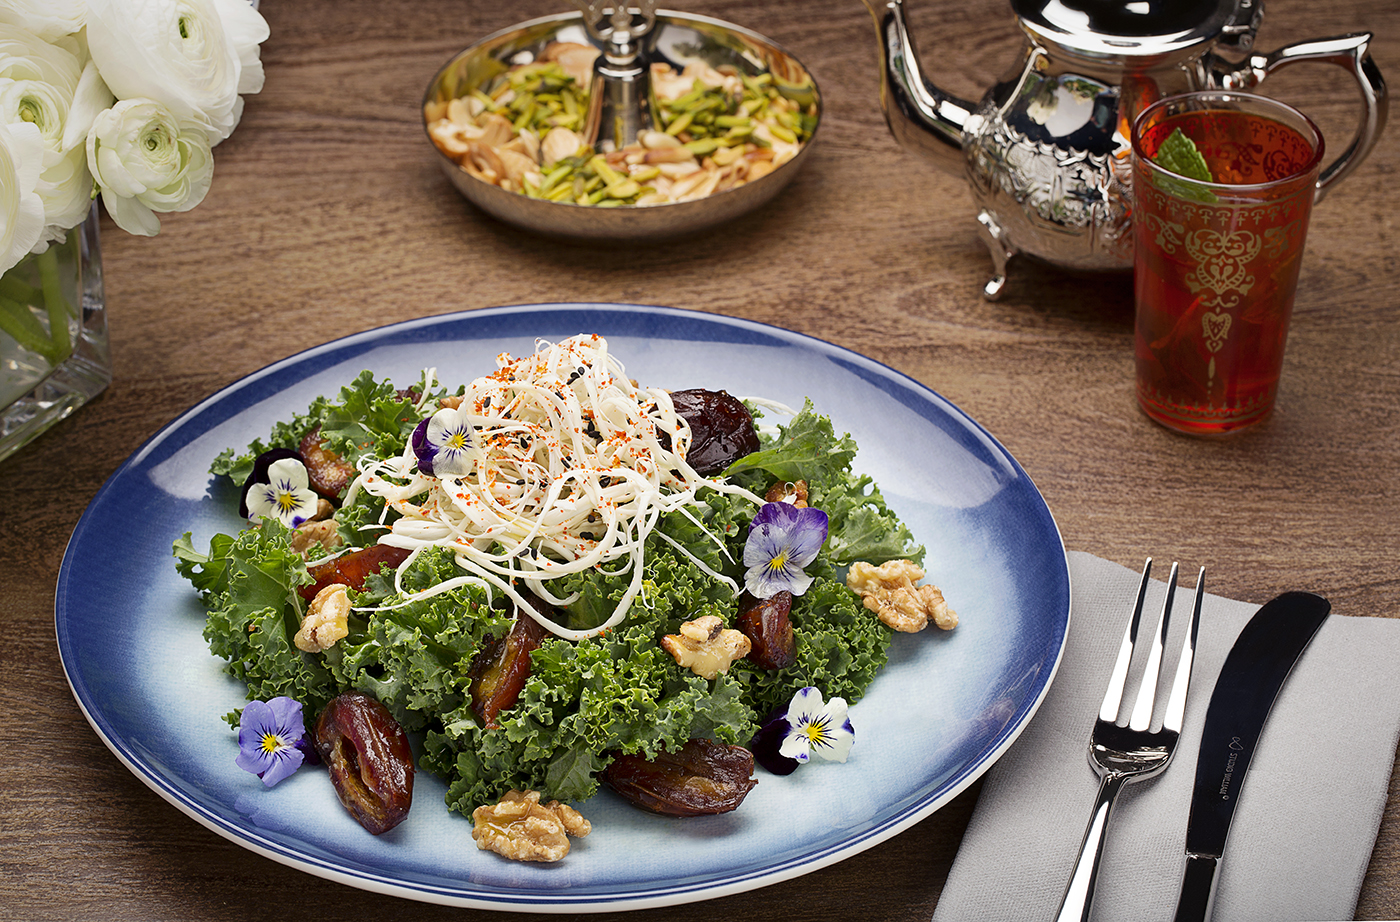 Warm Dates and Kale Salad